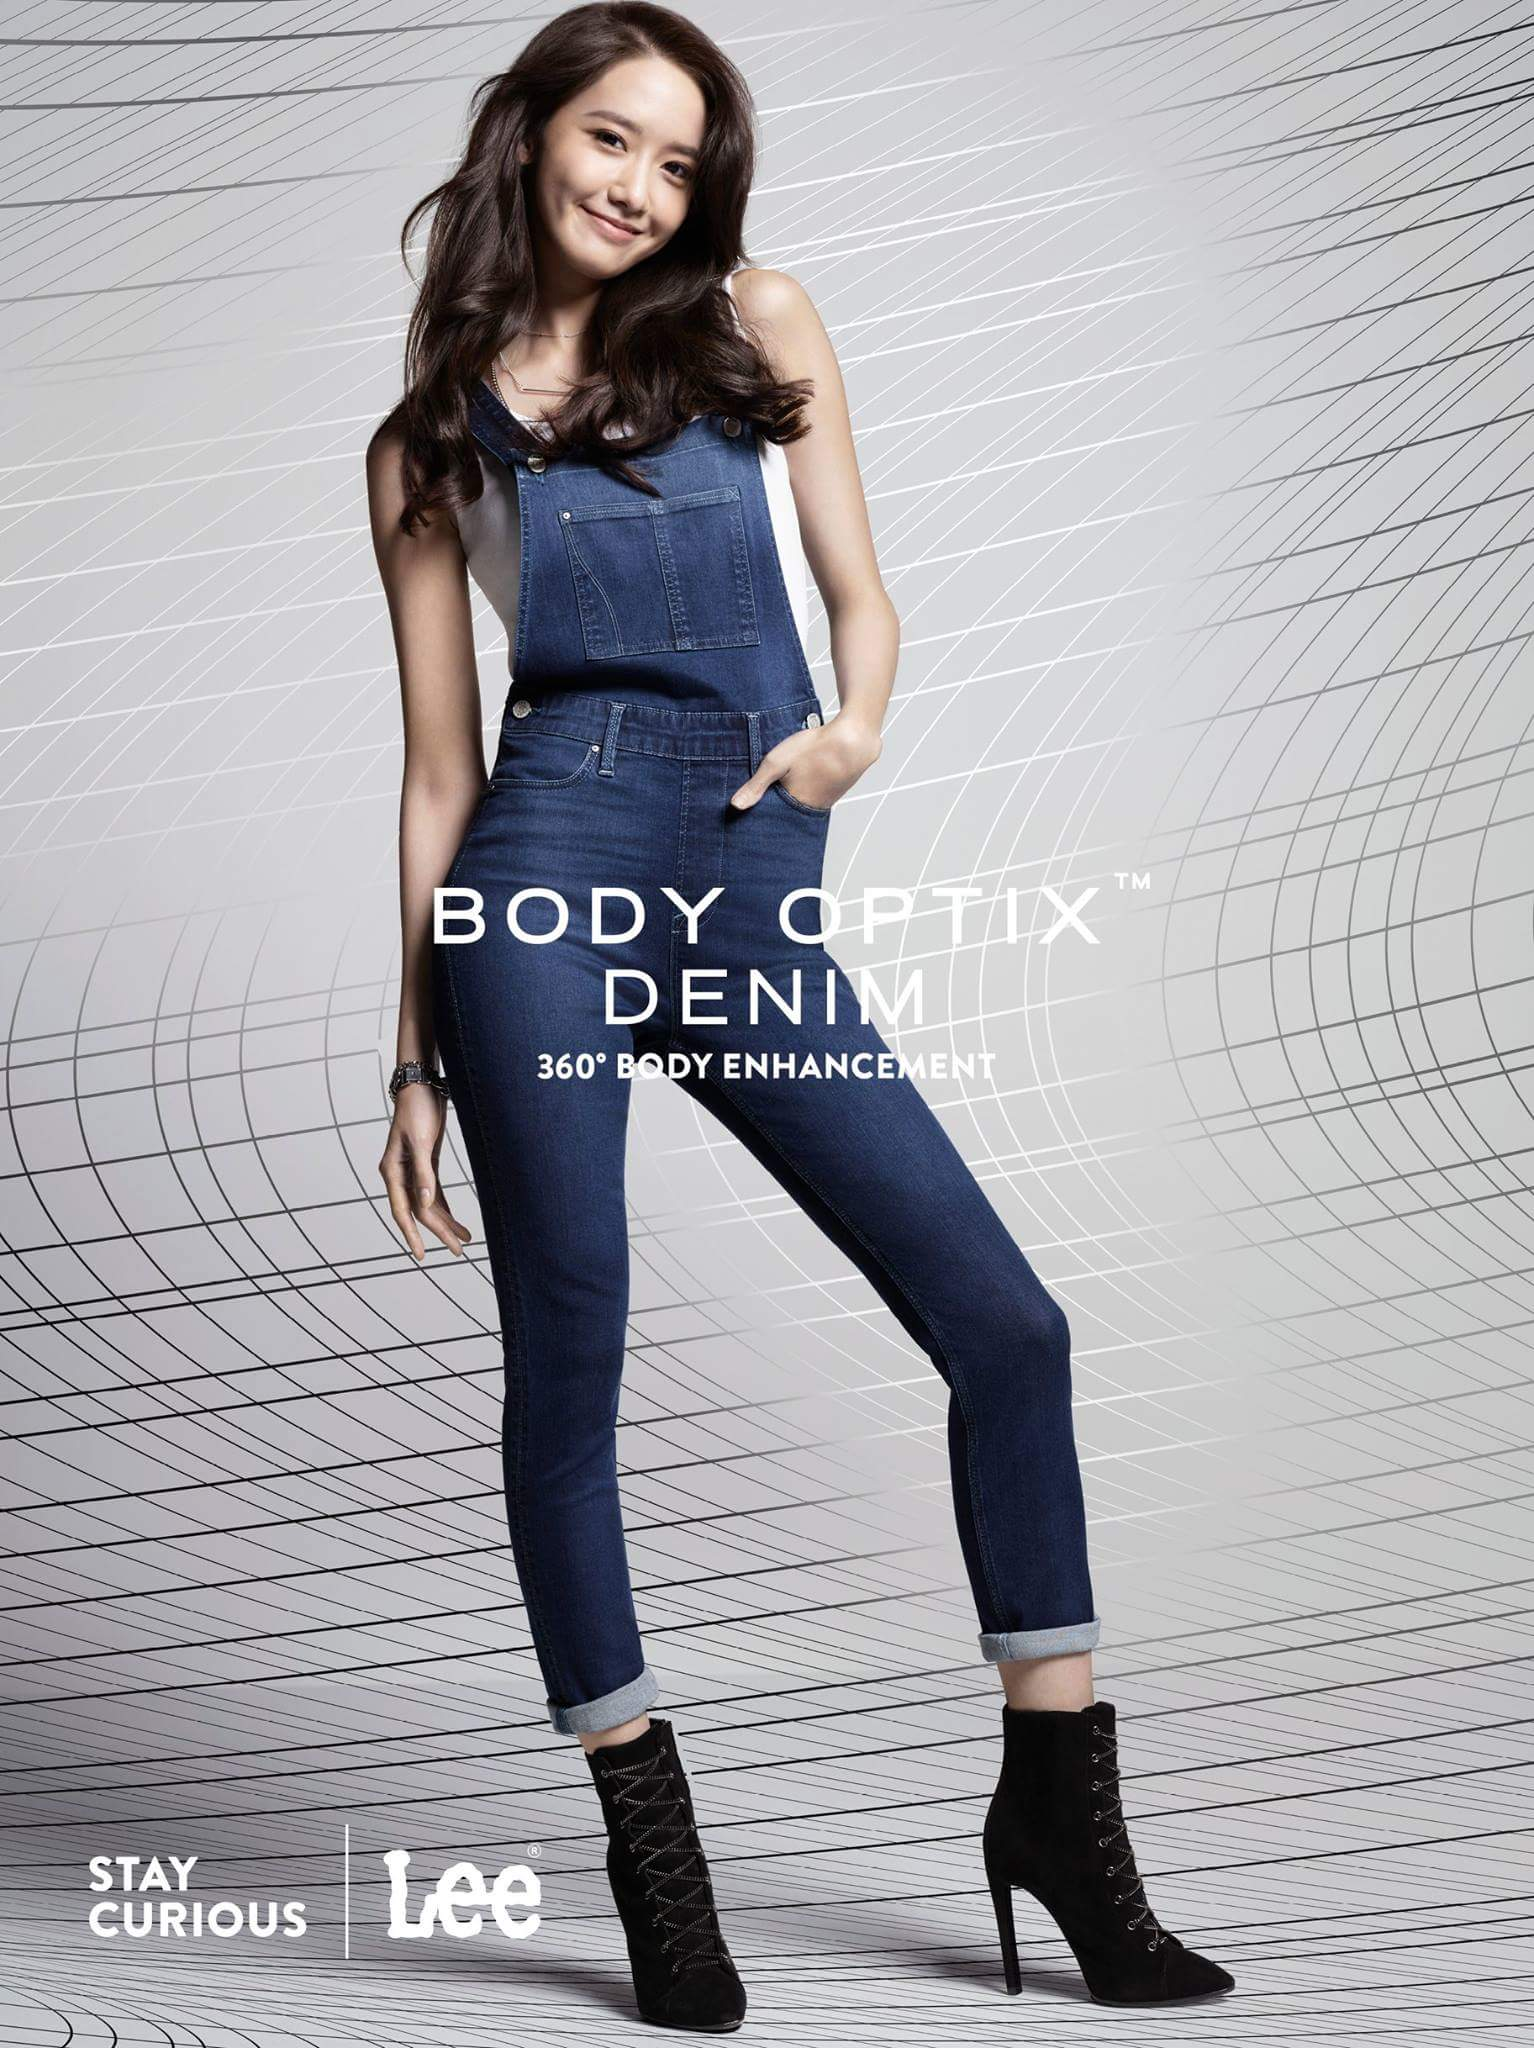 Yoona Lee Jeans Promotional Pictures Manuth Chek S